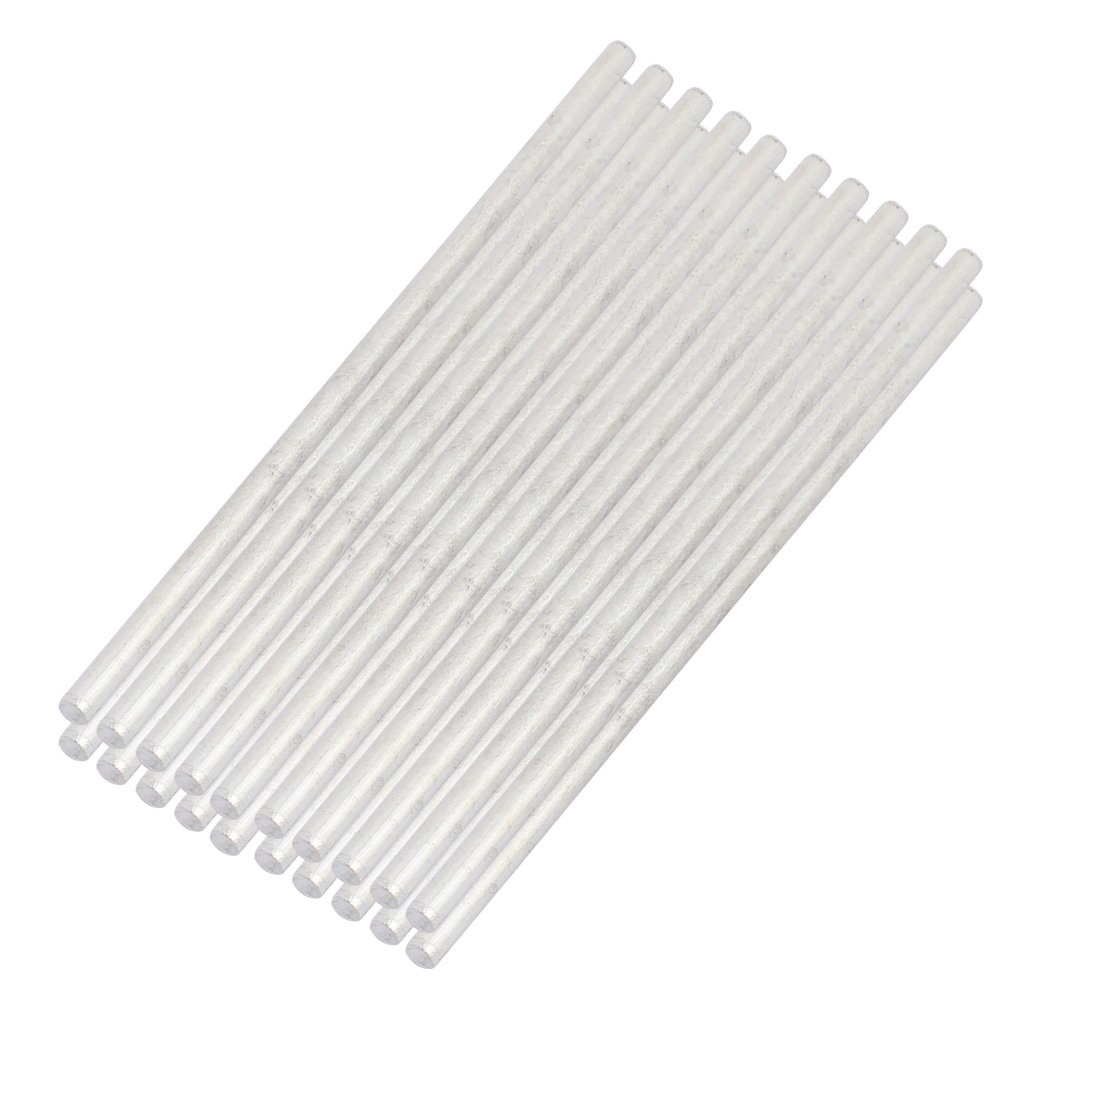 uxcell 30Pcs Round Shaft Solid Steel Rods Axles 3mm x 90mm Silver Tone